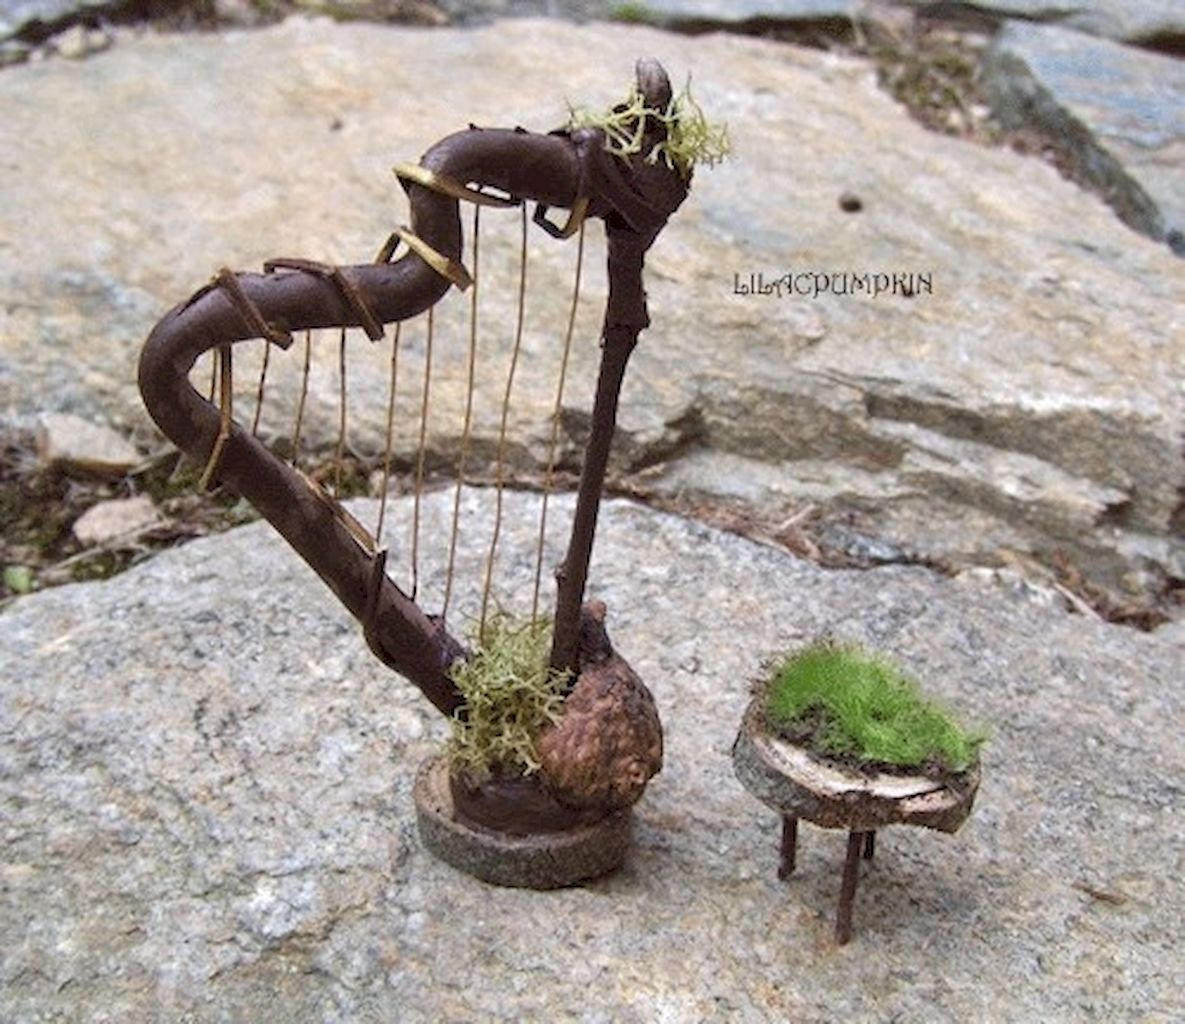 Cool 88 Fabulous DIY Fairy Garden Ideas https://besideroom.com/2017/06/16/88-fabulous-diy-fairy-garden-ideas/